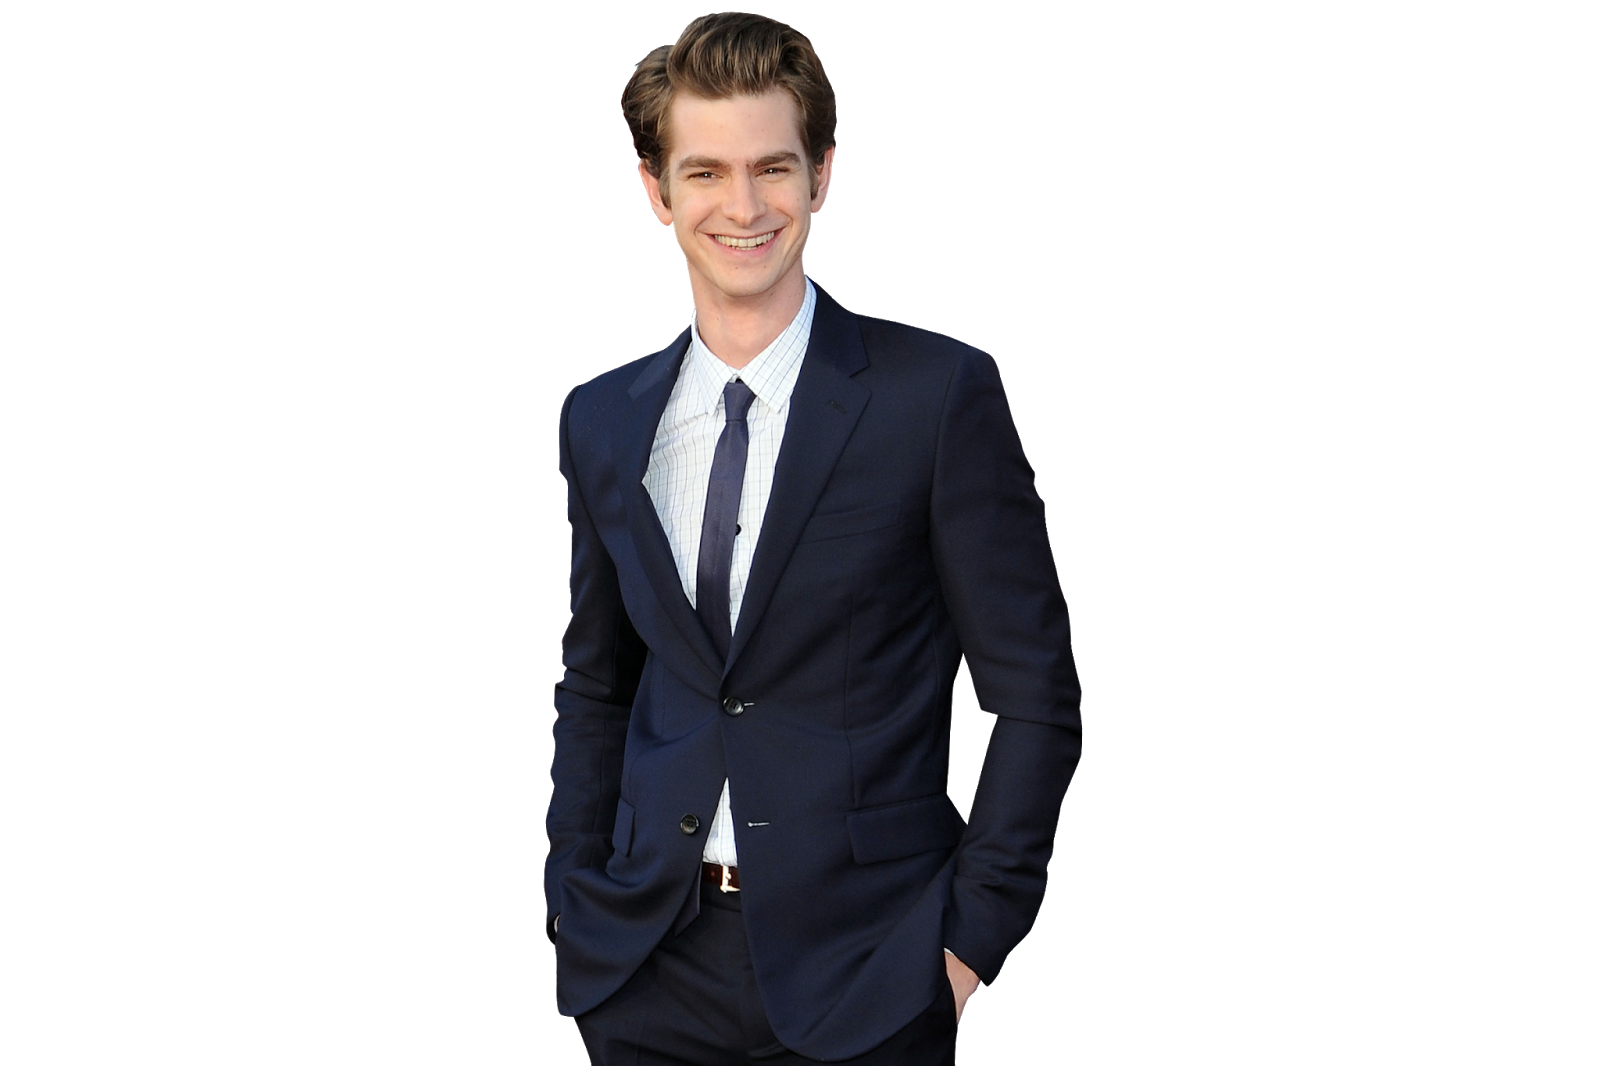 Celebrities Hd Png Transparent Celebrities Hd Png Images: Male & Female Clebrities: Andrew Garfield HD Wallpapers